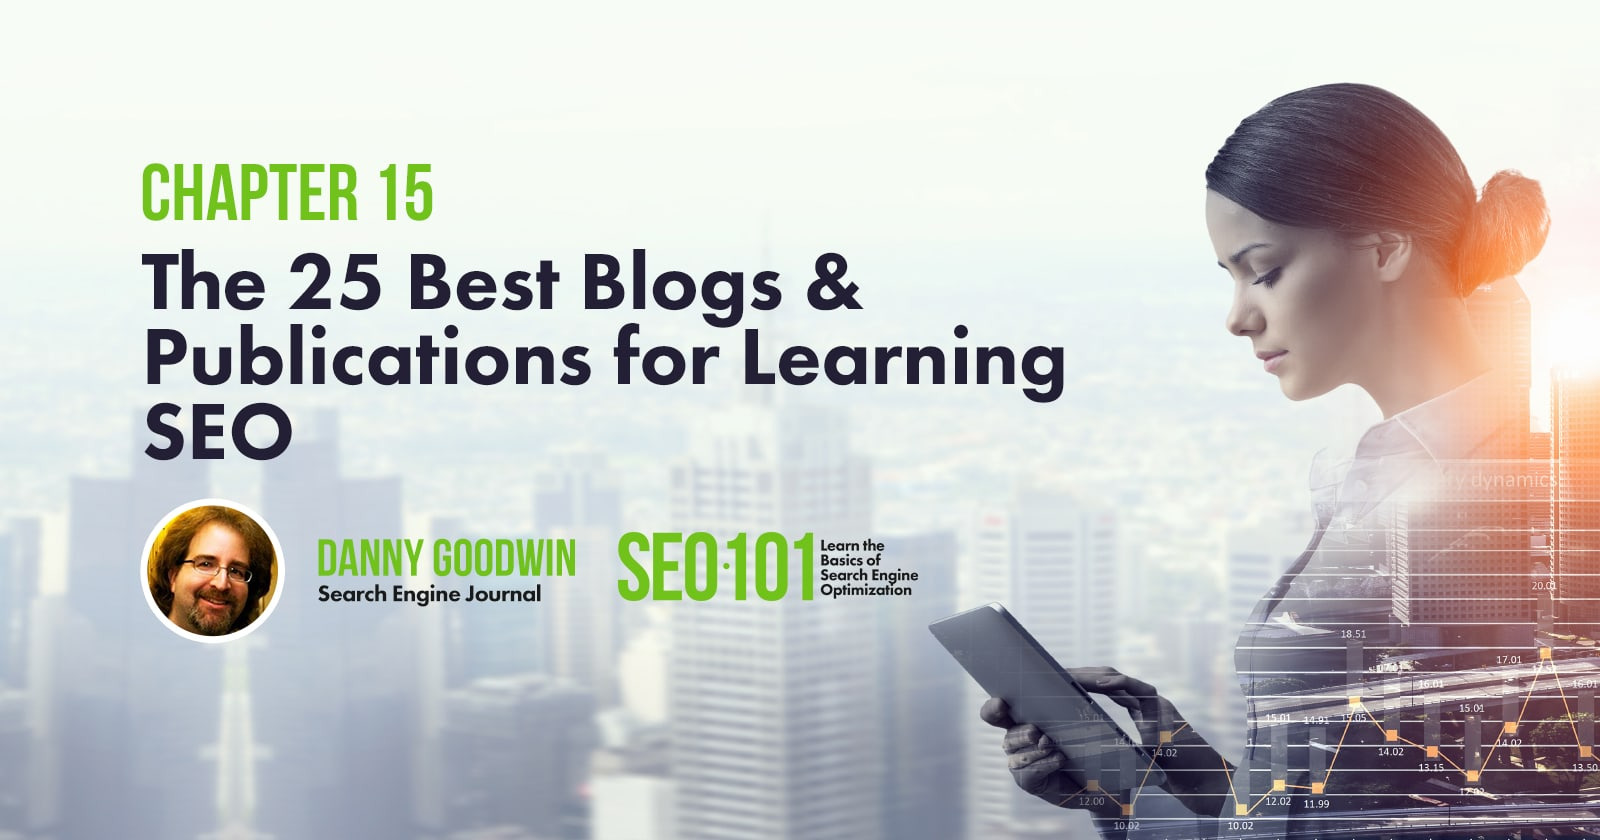 The 25 Best Blogs & Publications to Learn SEO by @MrDannyGoodwin